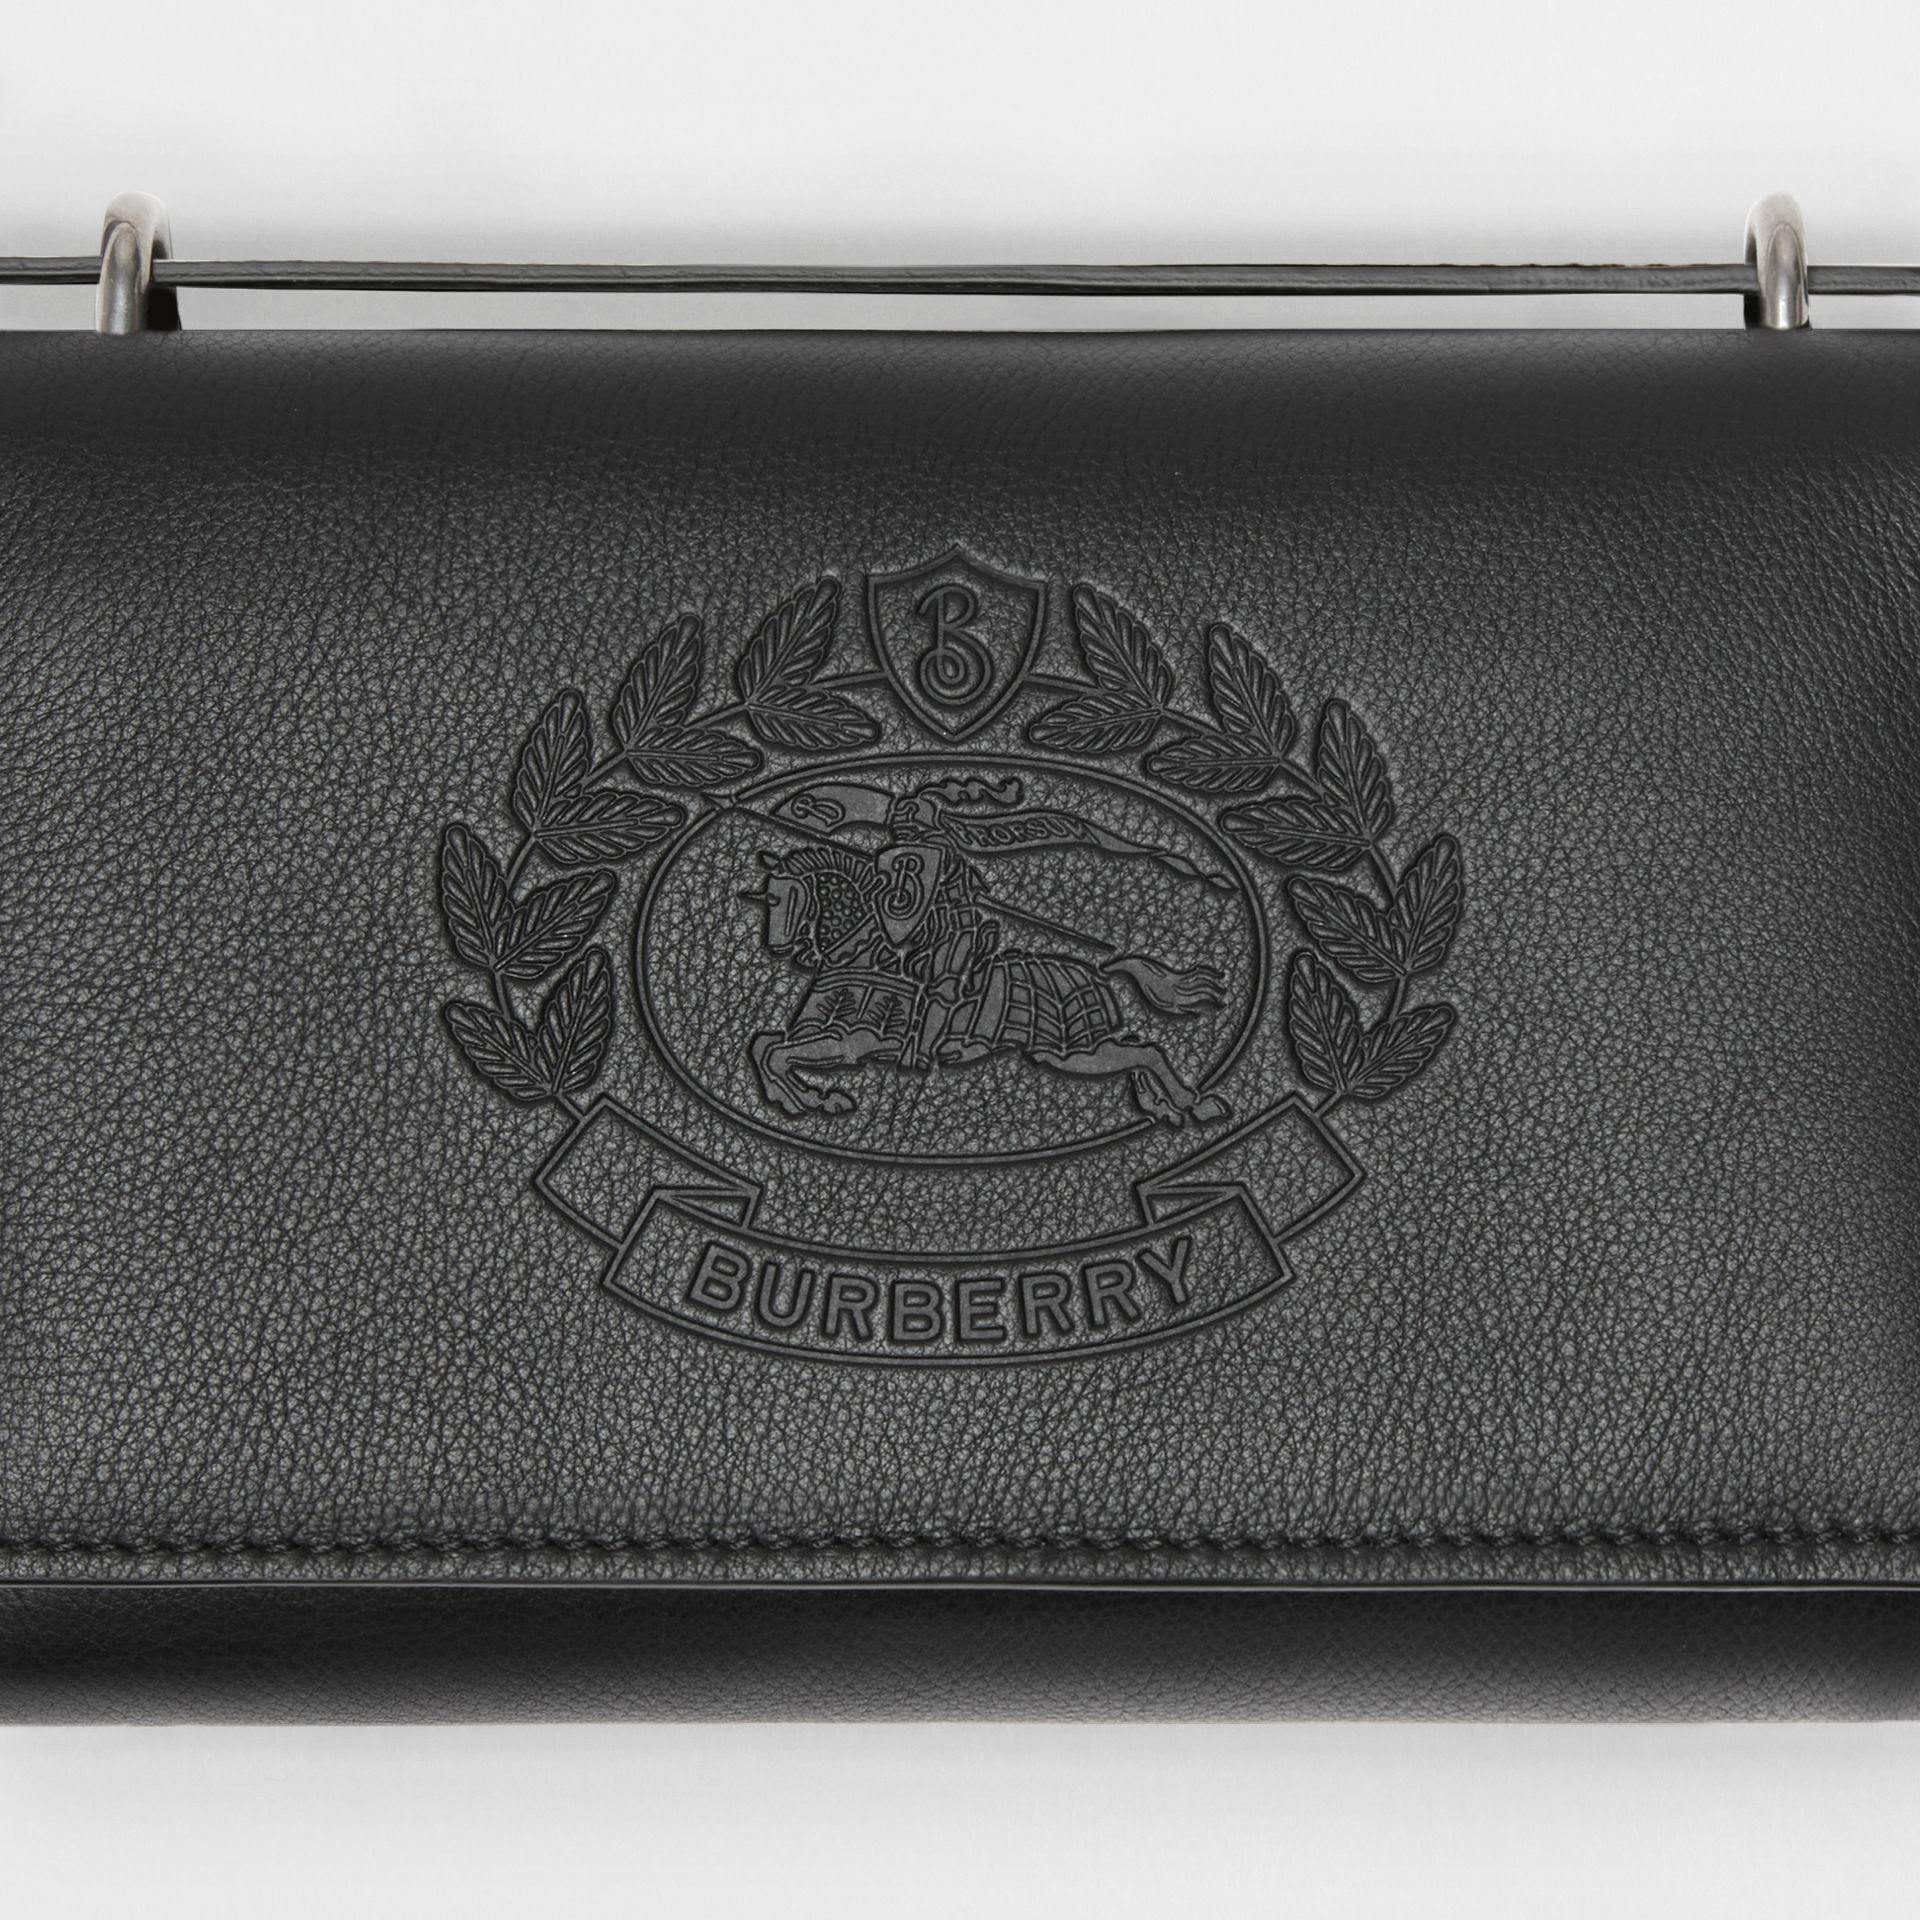 Embossed Crest Leather Wallet with Detachable Strap in Black - Women | Burberry Australia - gallery image 1